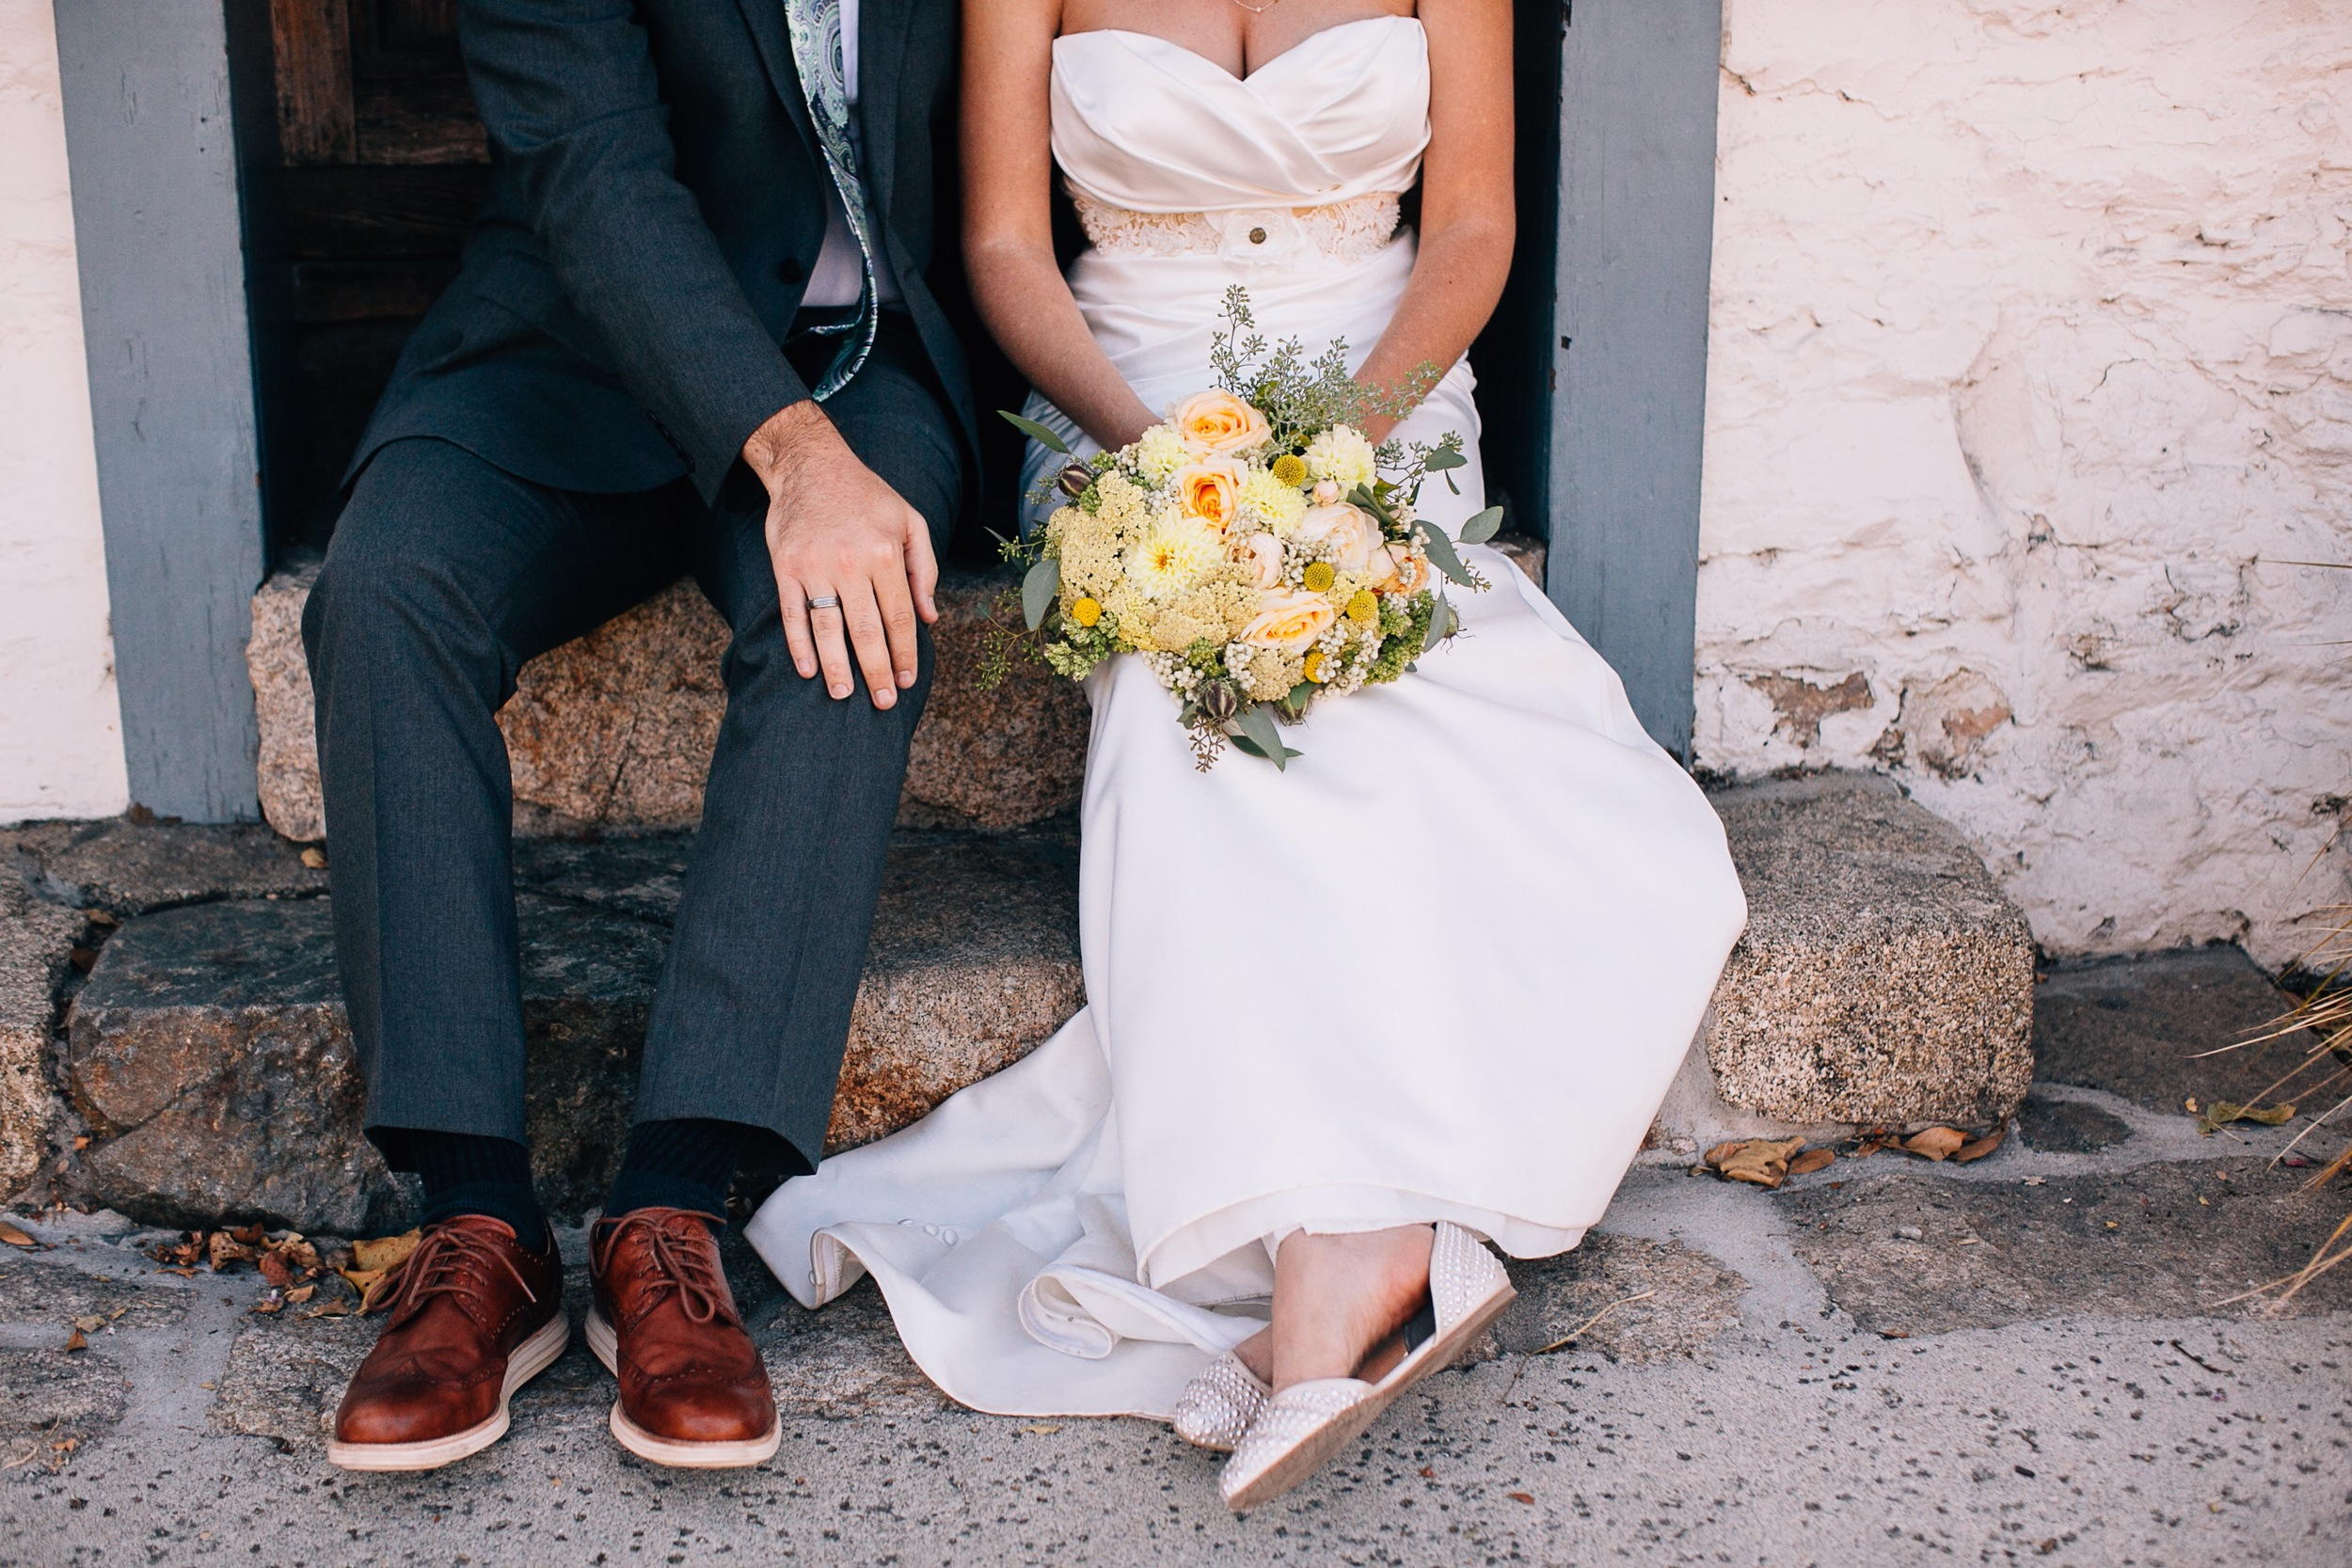 Couple Sitting Together with Bridal Bouquet